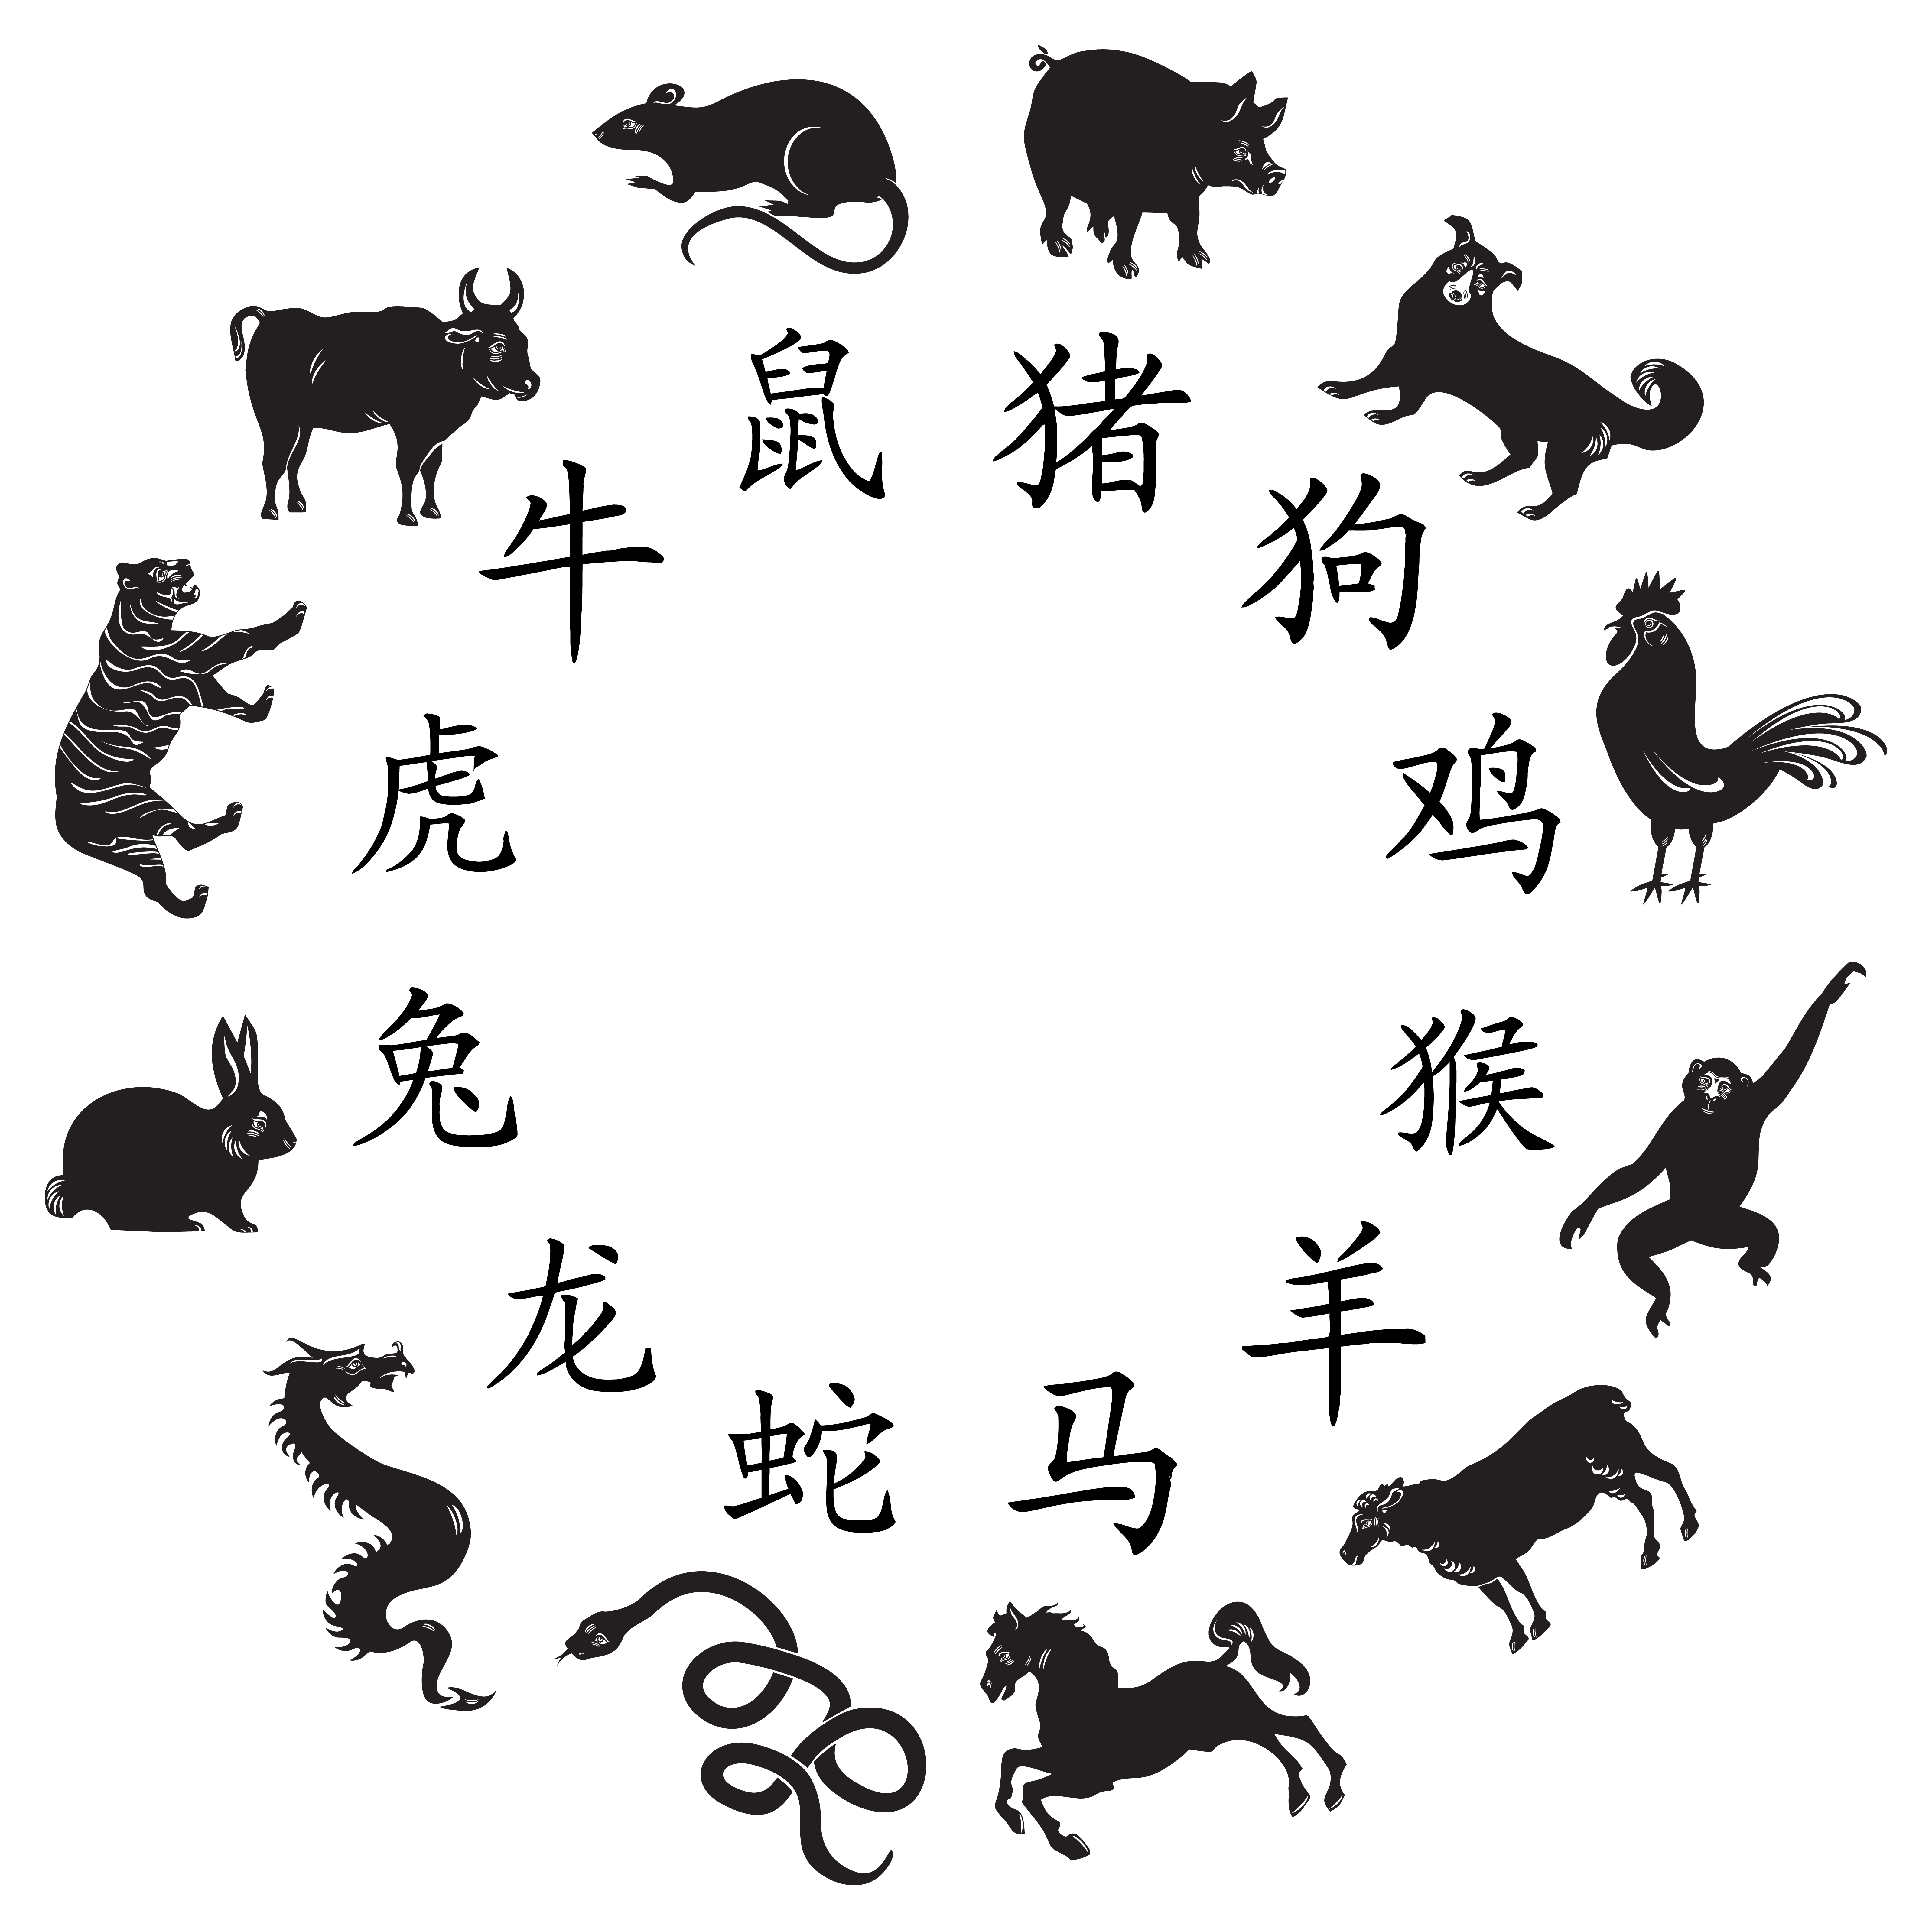 Chinese clipart animal chinese. Transparent zodiac png image